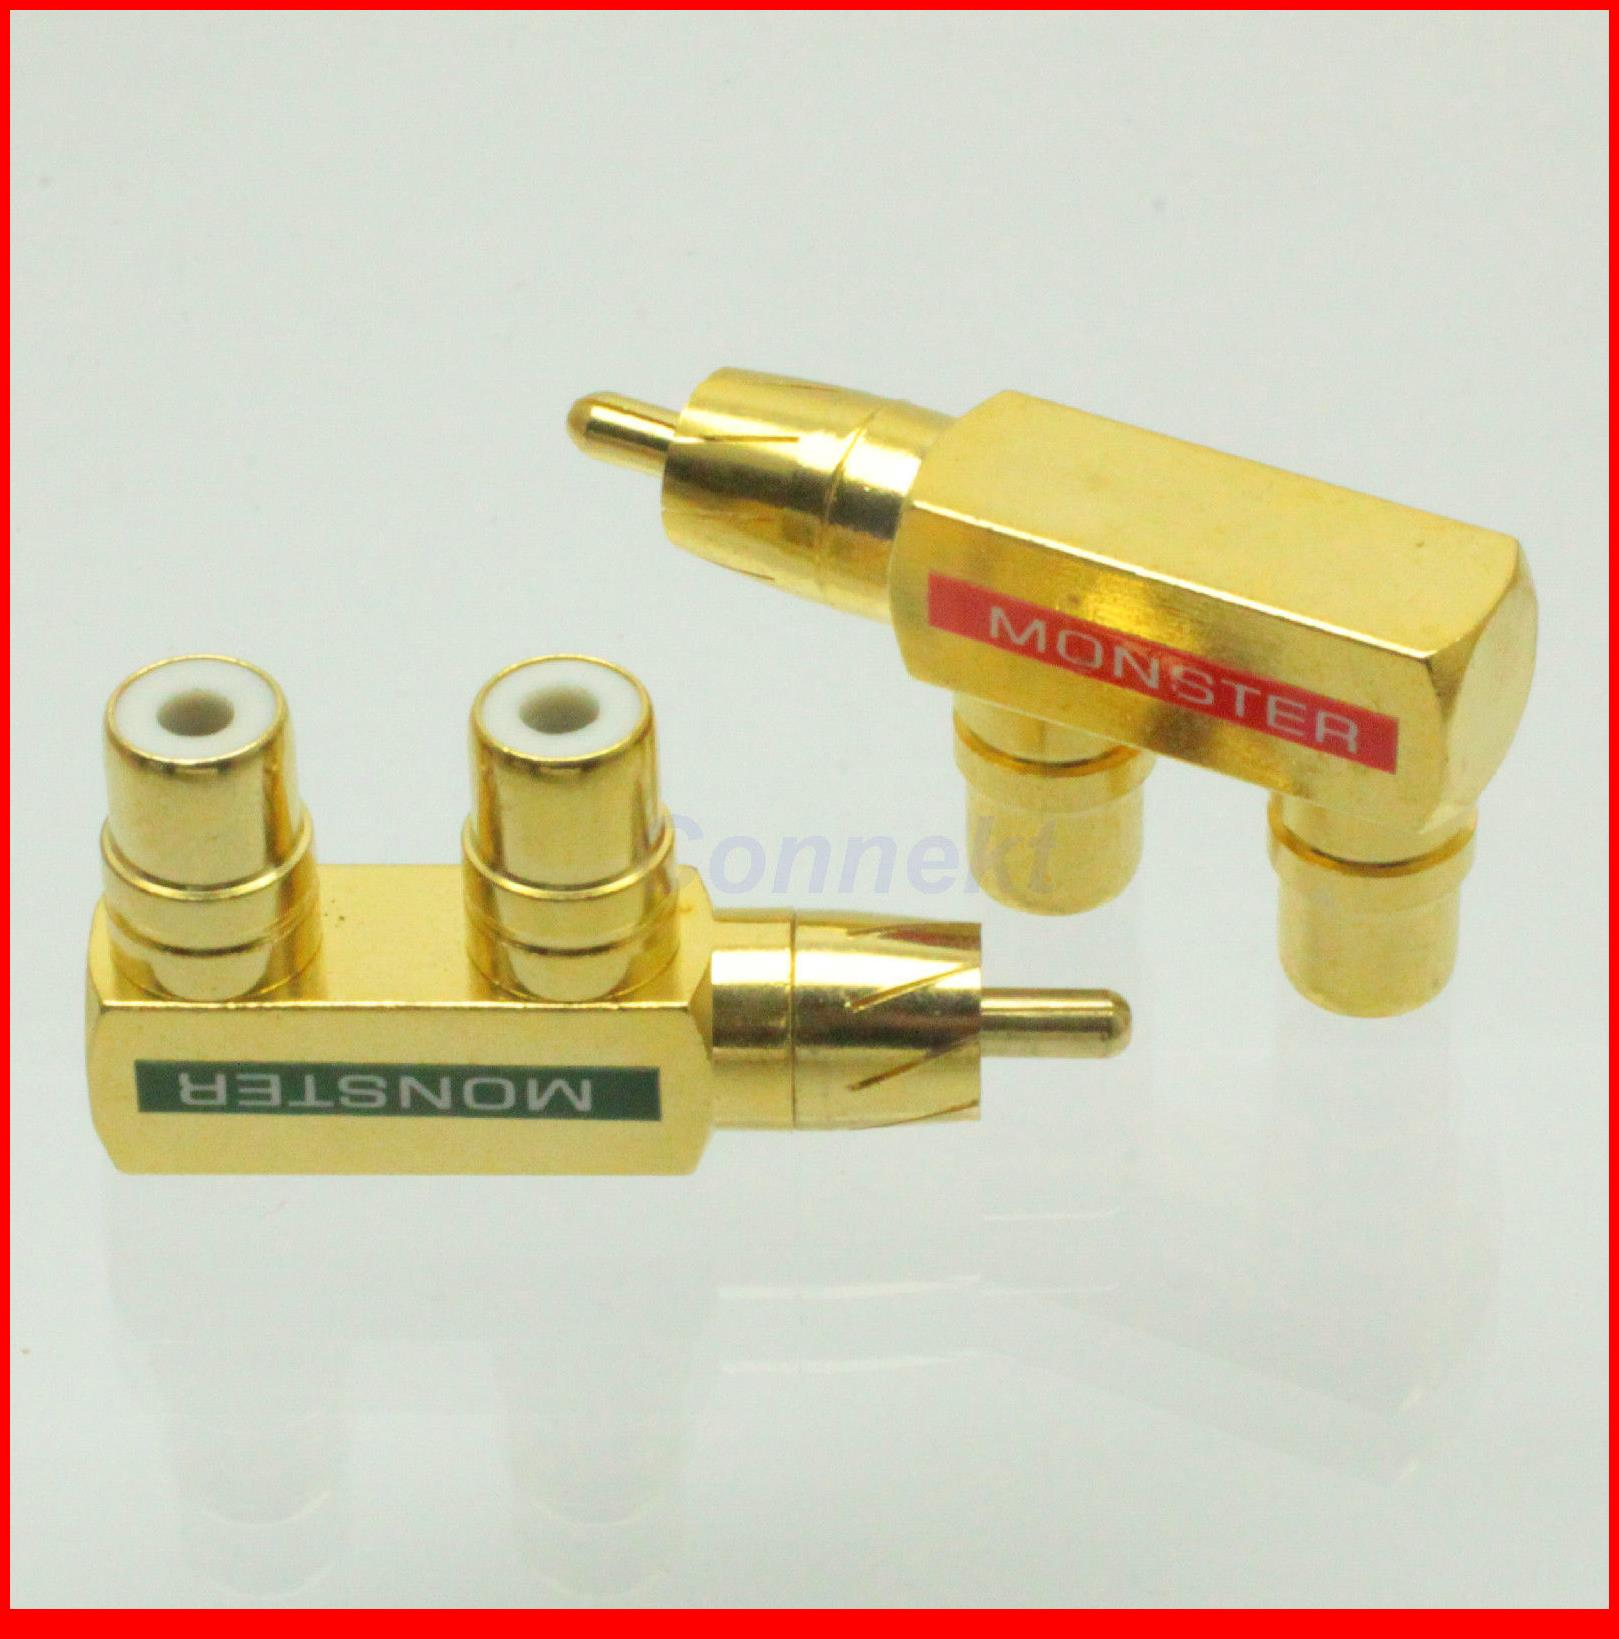 5pcs/lot 1 pair RCA AV Audio Splitter Plug Adapter 1M2F 1 Male to 2 Female F type golden<br><br>Aliexpress